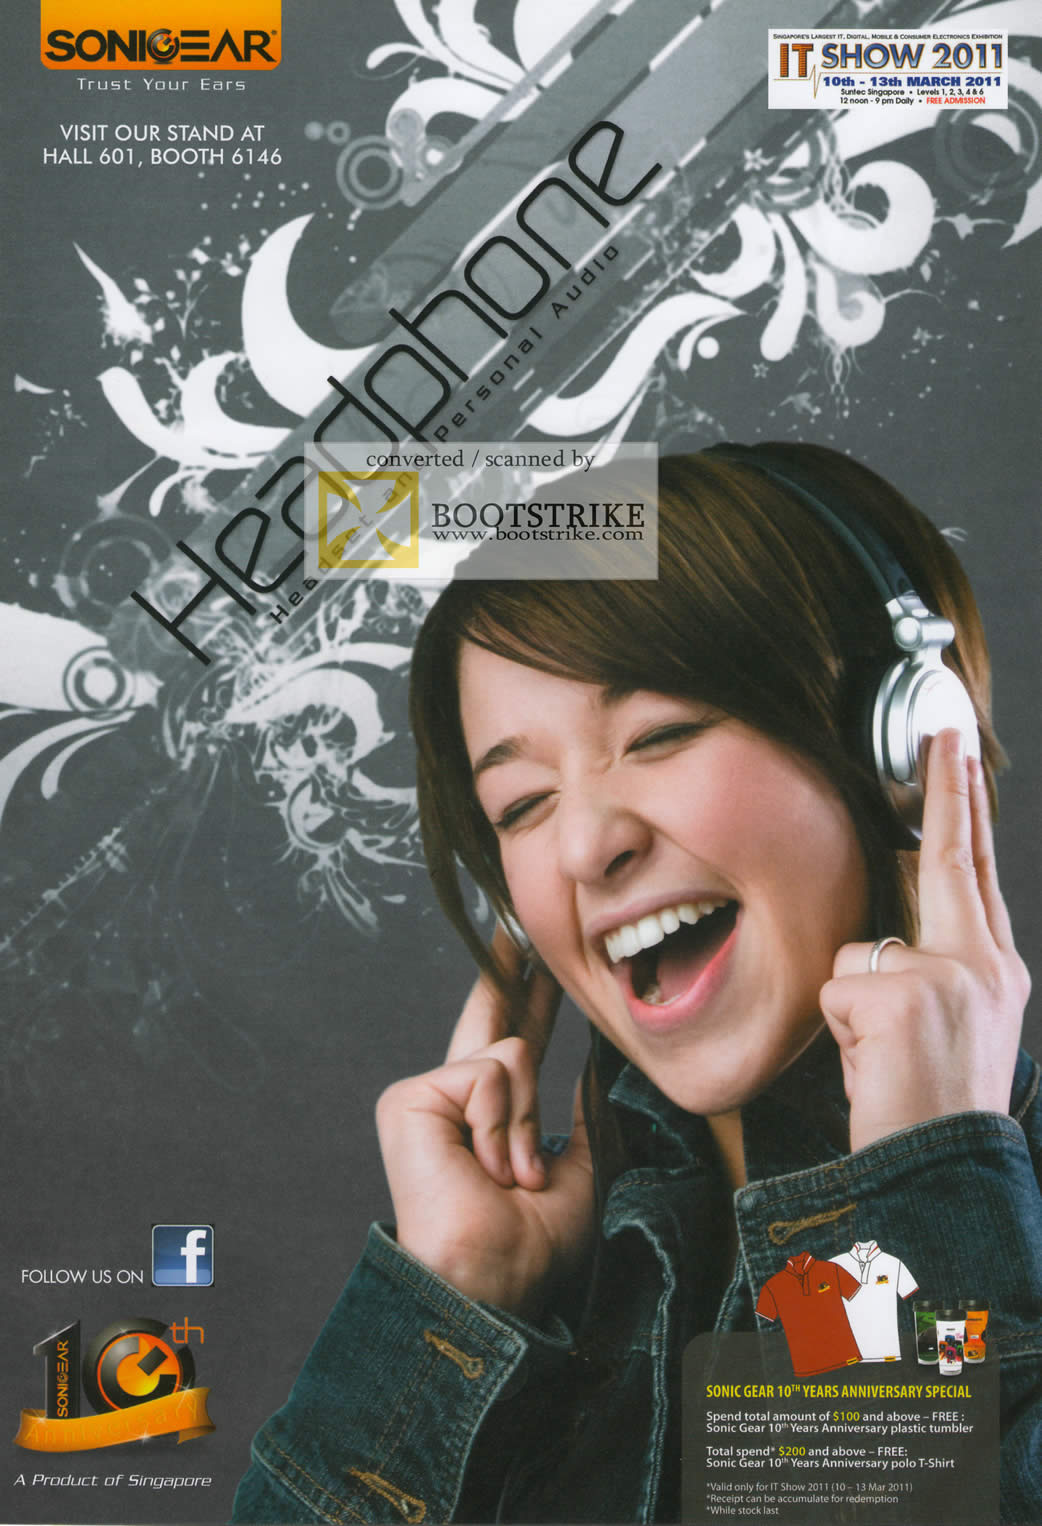 IT Show 2011 price list image brochure of Leapfrog Sonicgear Headphone And Personal Audio